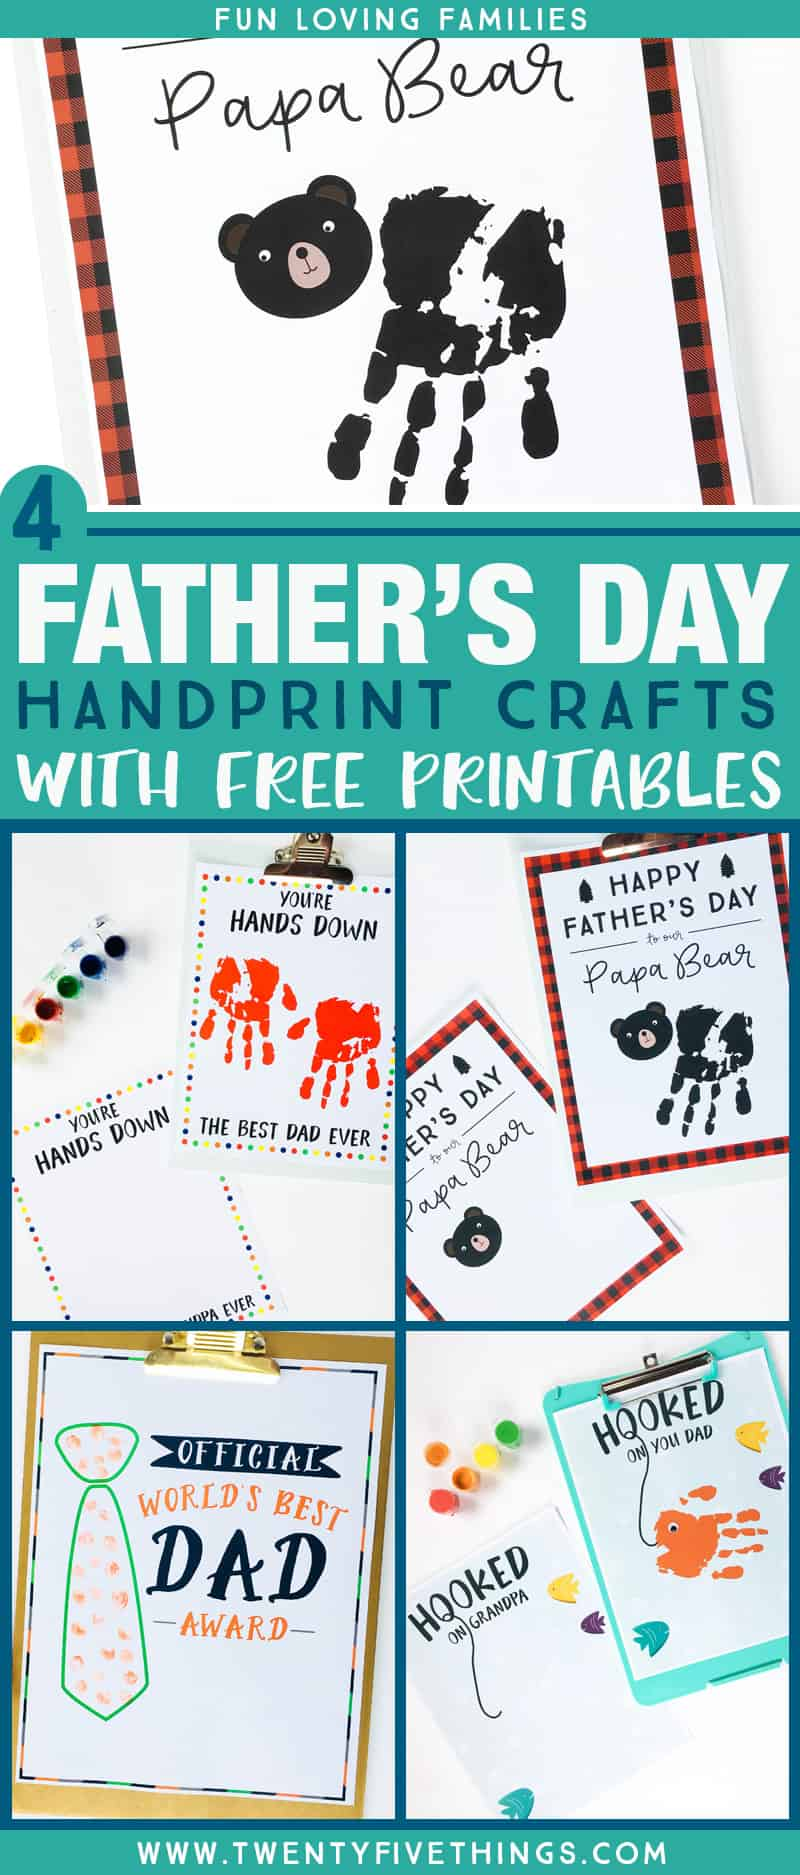 Make an adorable Father's Day handprint craft with one of our free printables. We've also included options for Grandpa, so we've got you covered! #fathersday #freeprintable #handprintcraft #fromthekids #papabear